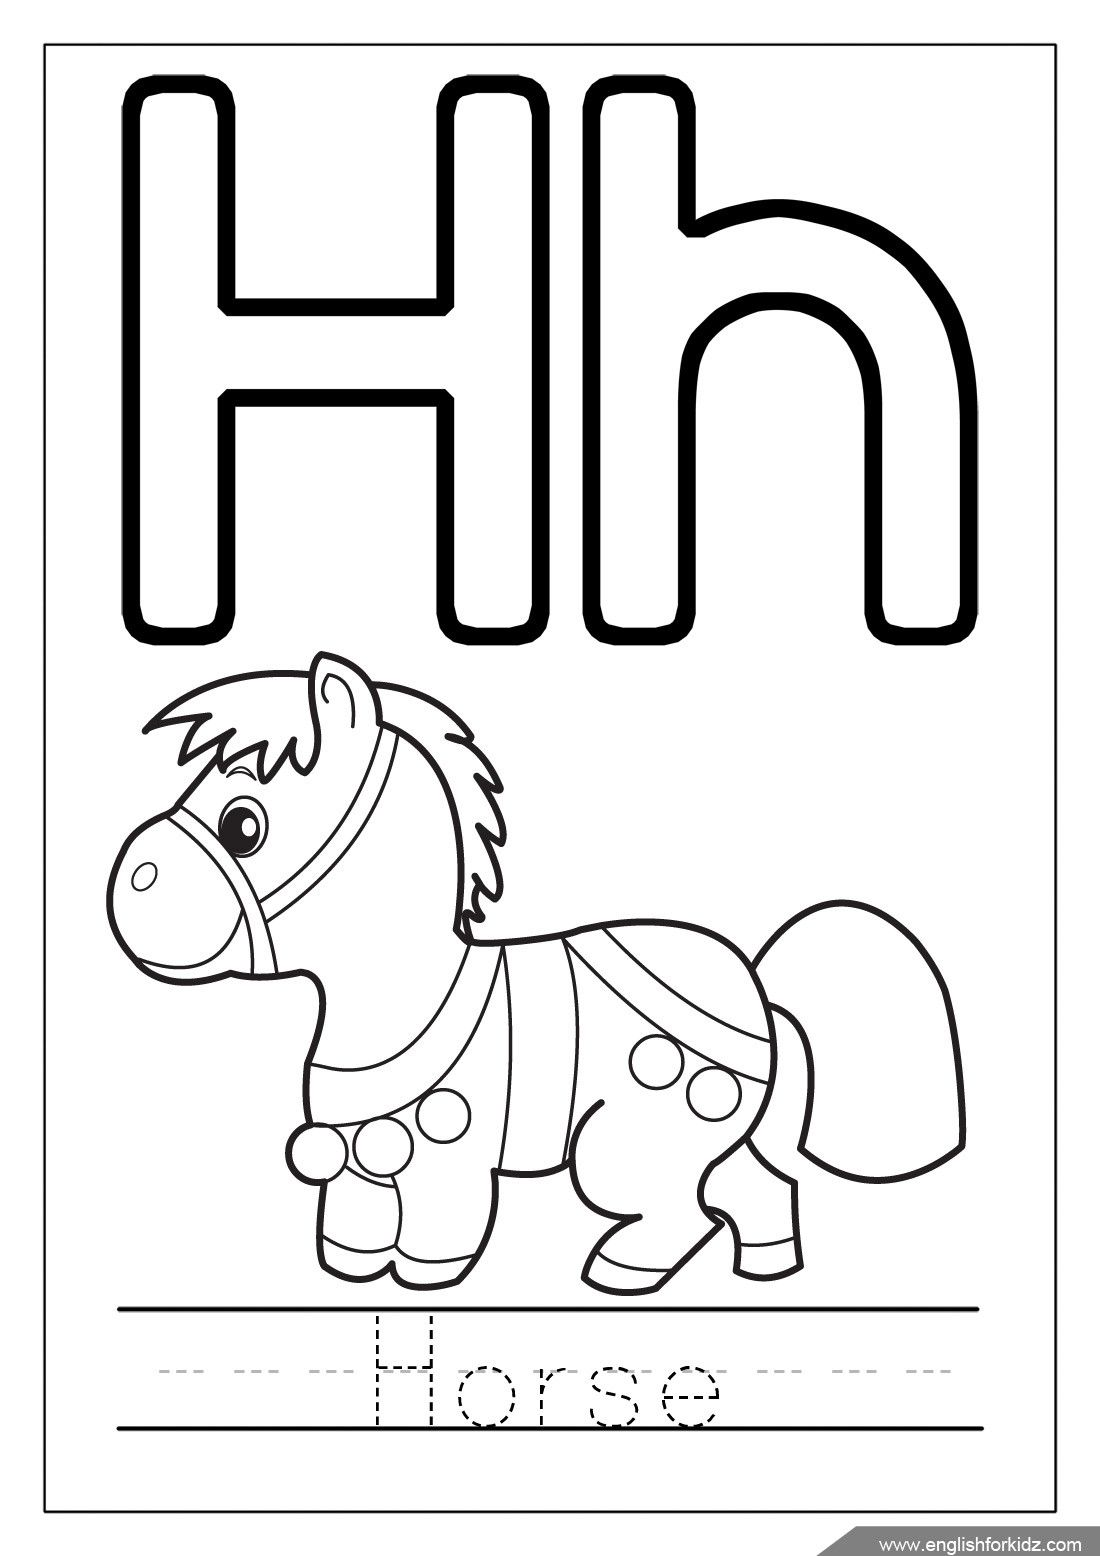 H Is For Horse Coloring Page Youngandtae Com Alphabet Coloring Pages Letter A Coloring Pages Alphabet Coloring